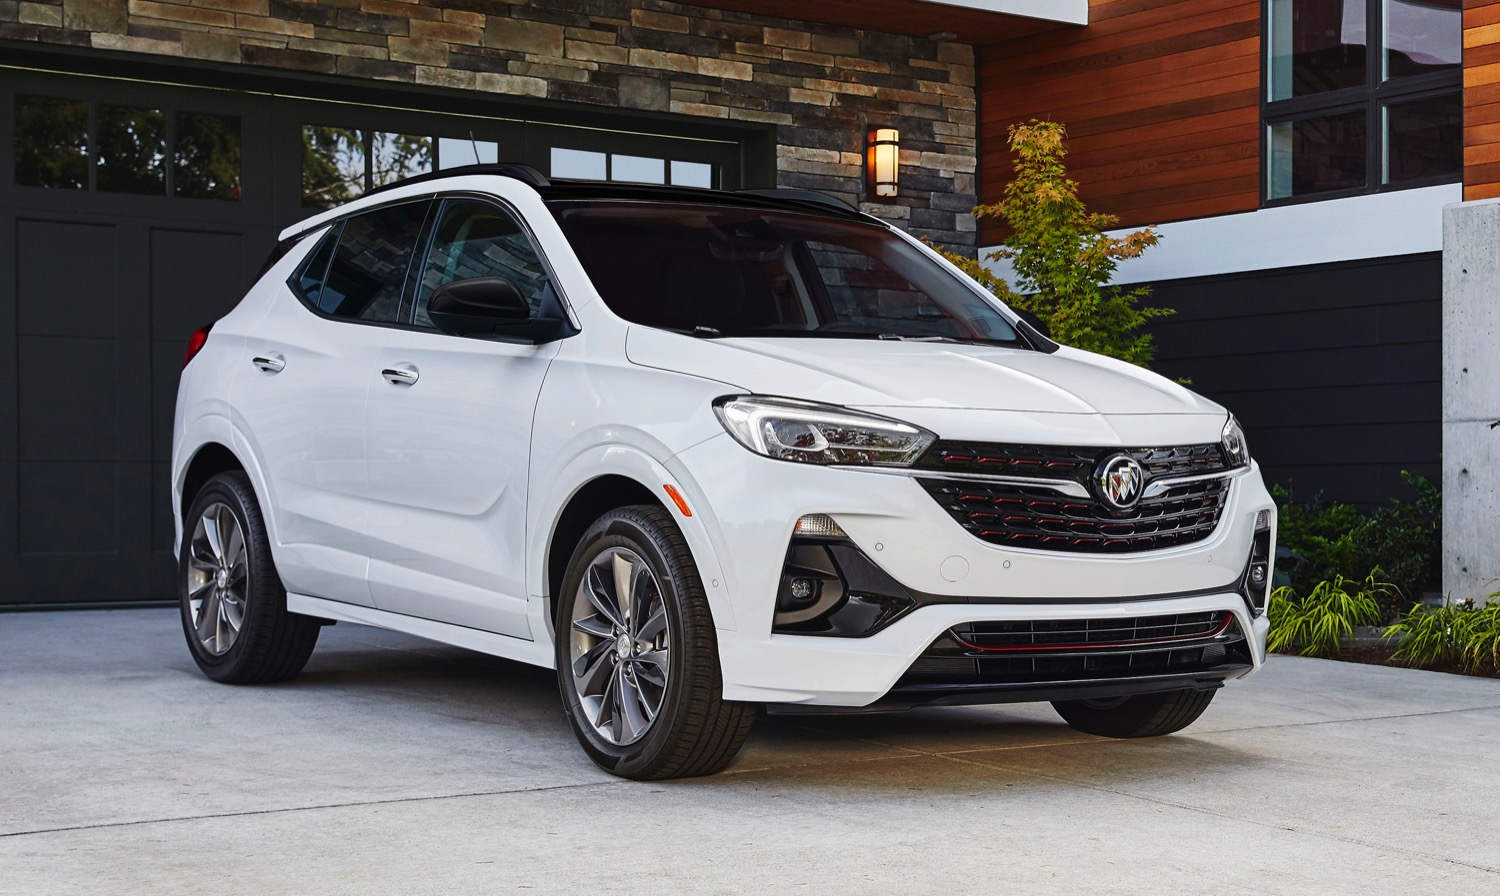 Buick Encore Gx Discount, Special Lease Offer June 2020 | Gm When Will The 2022 Buick Encore Gx Be Available